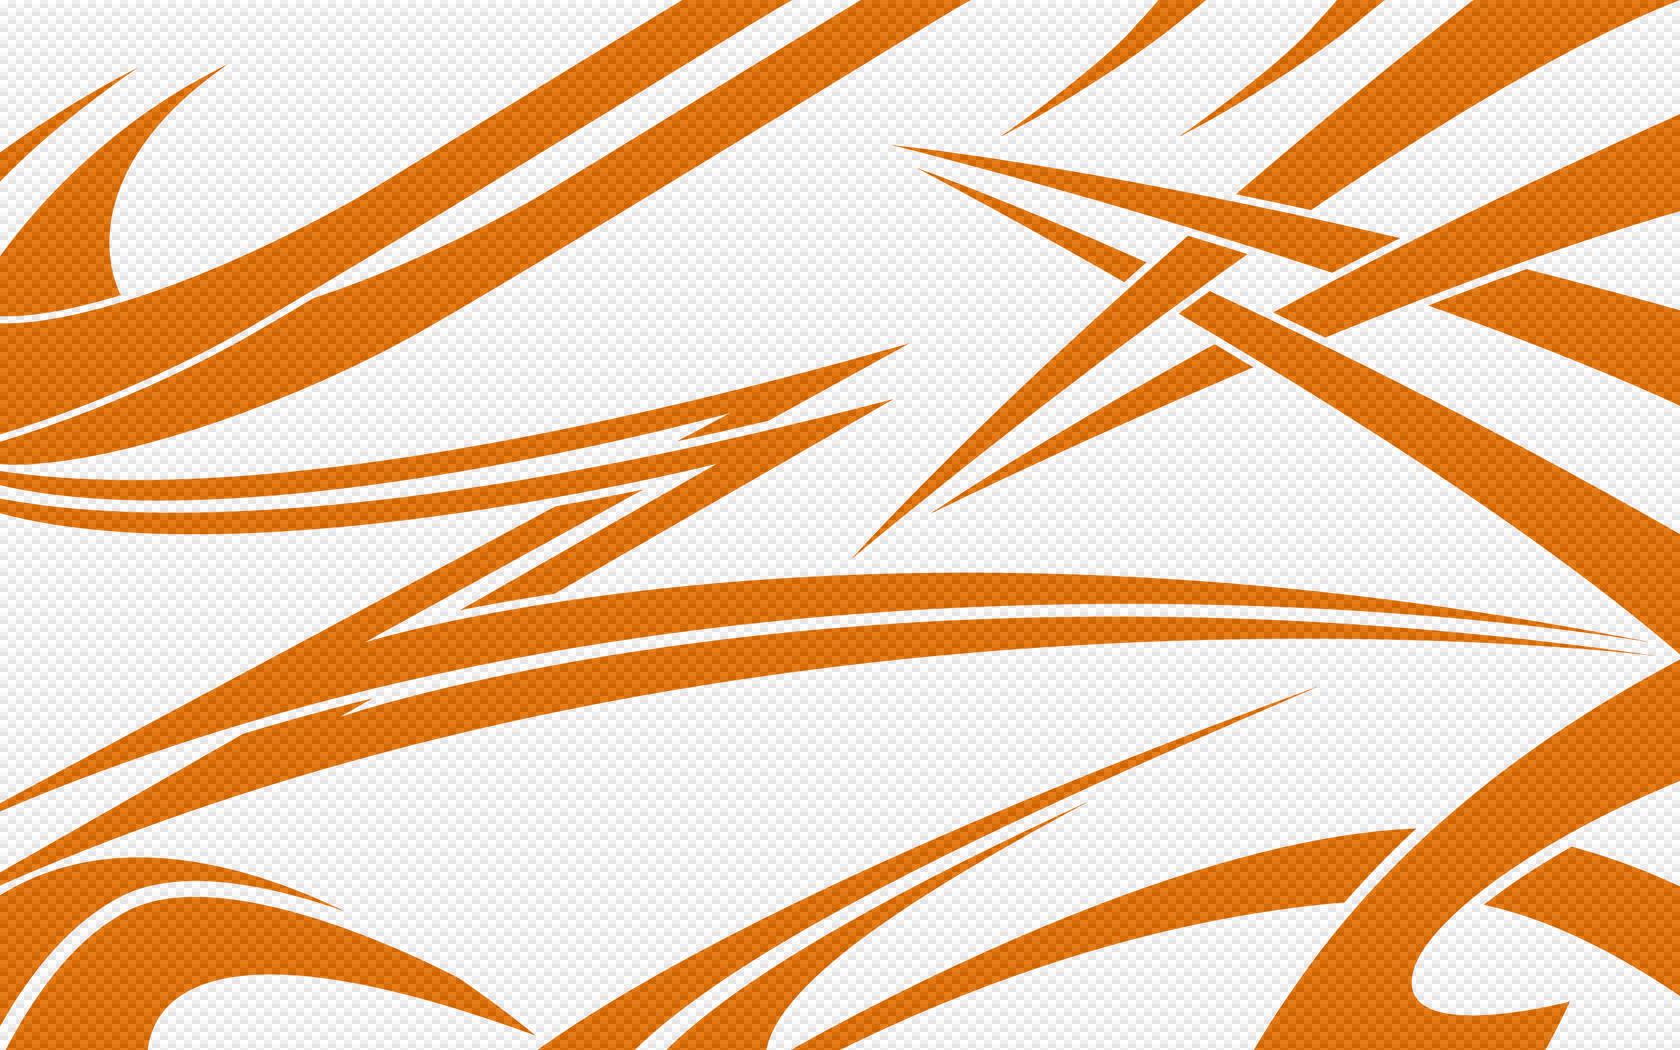 White Orange Carbon   Uncategorized Wallpapers Best HD Wallpapers 1680x1050